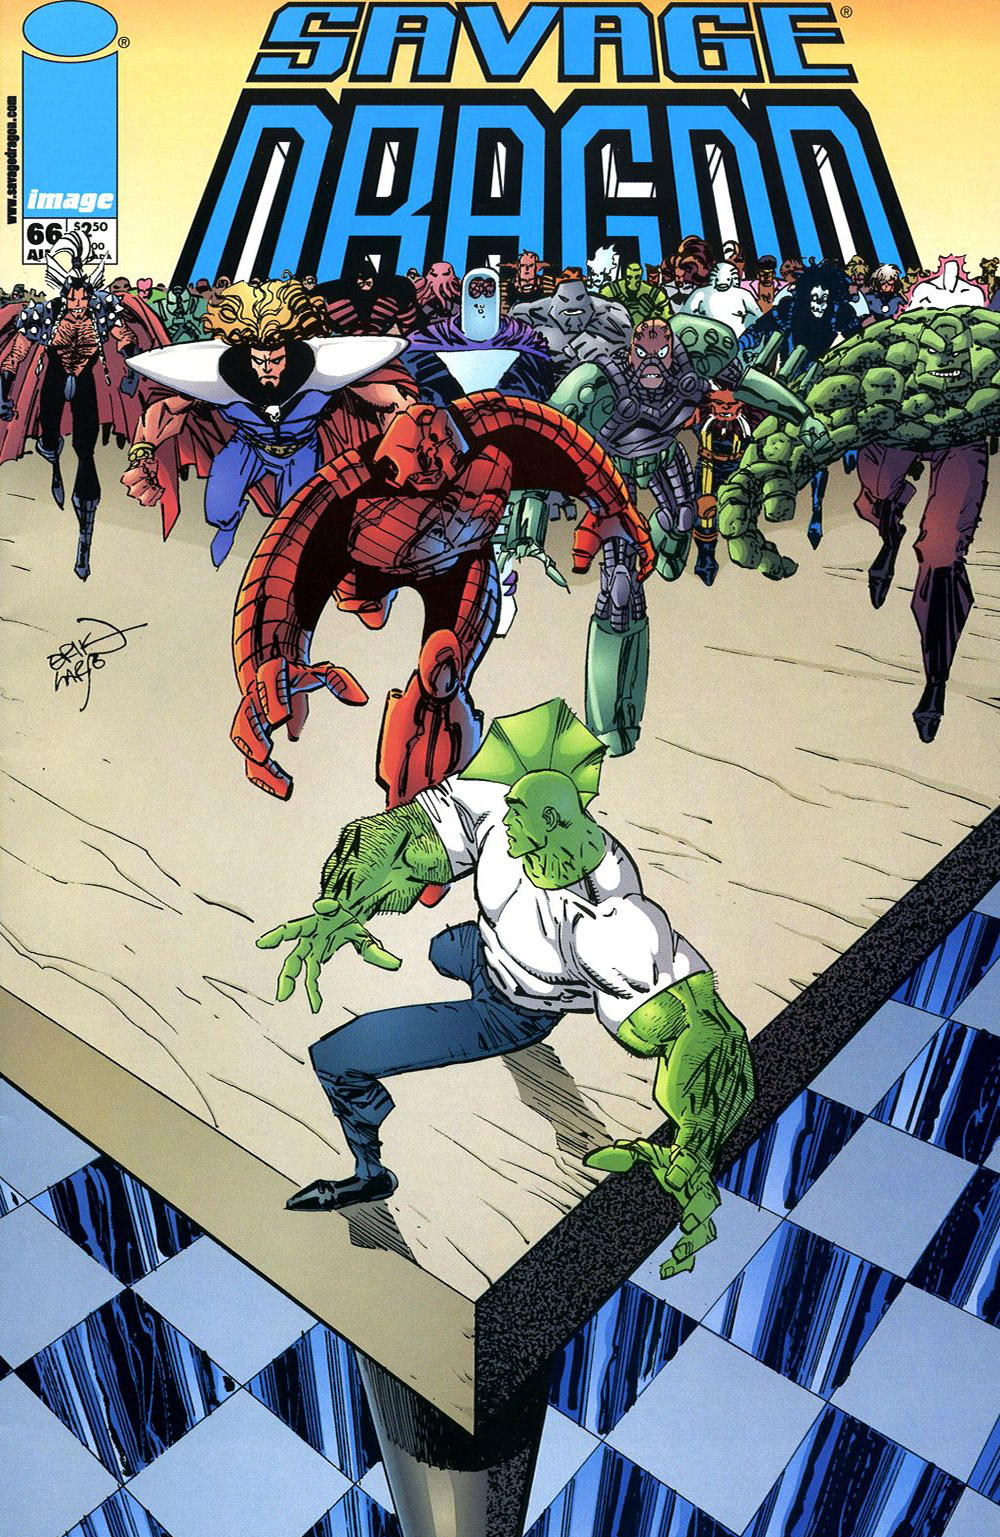 Cover Savage Dragon Vol.2 #66